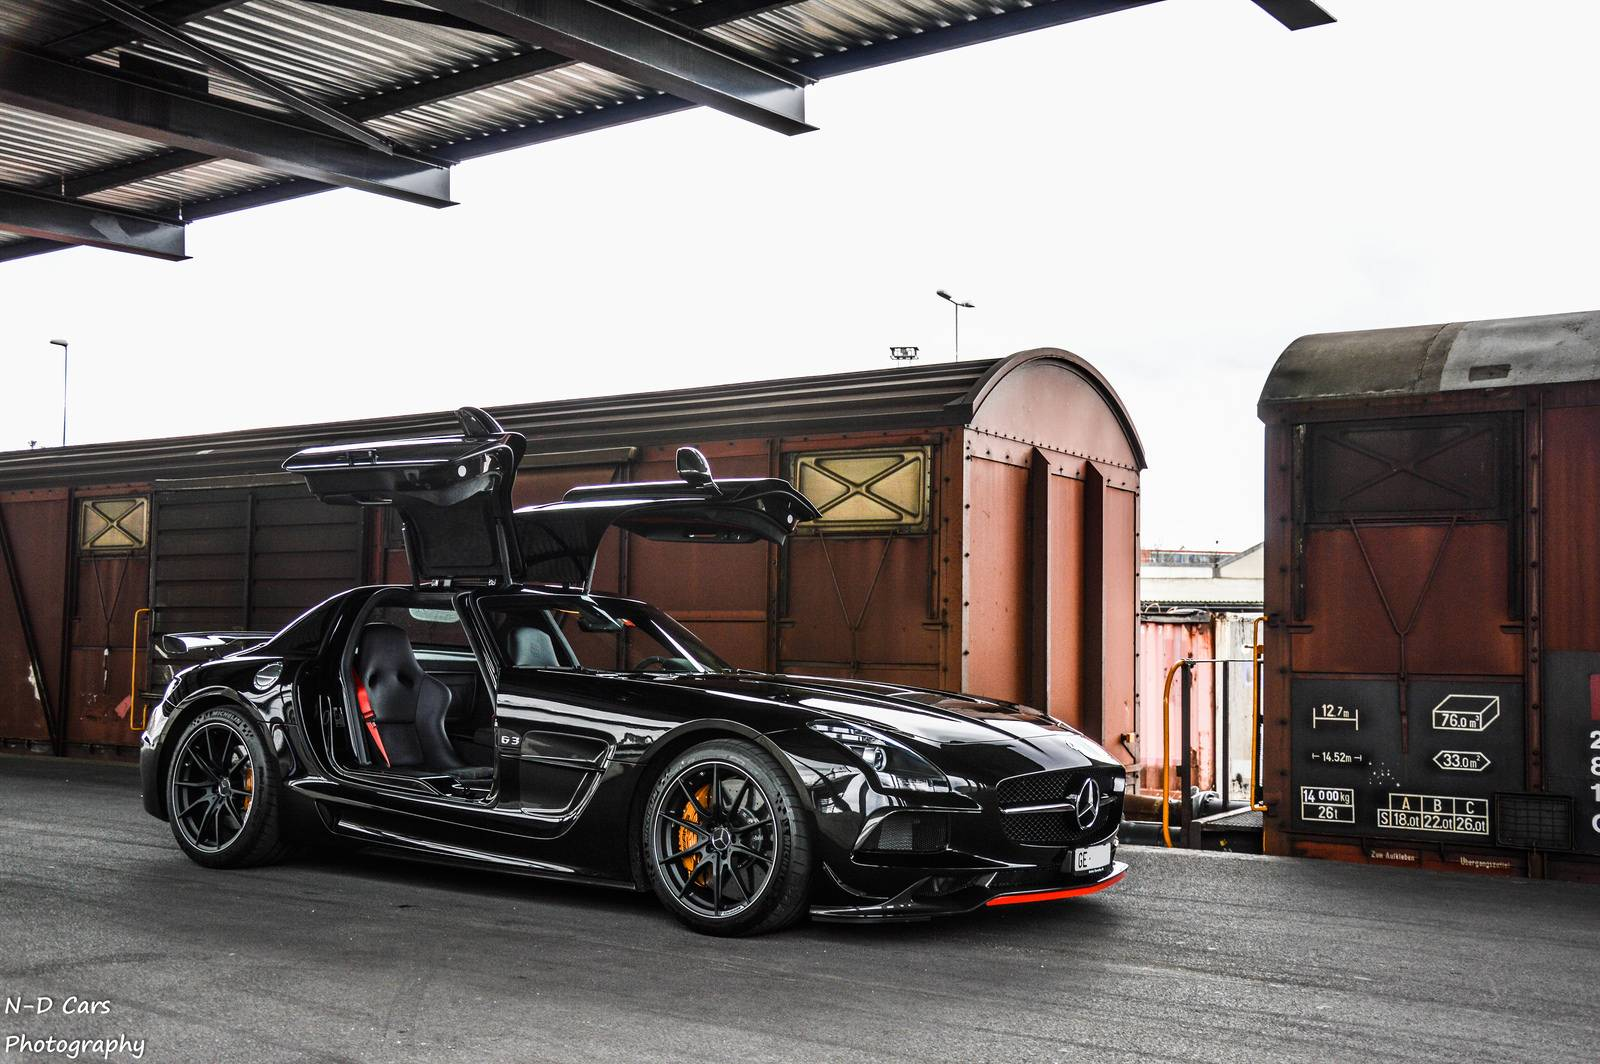 Sls Black Series >> Black Mercedes Benz Sls Amg Black Series Photoshoot Gtspirit